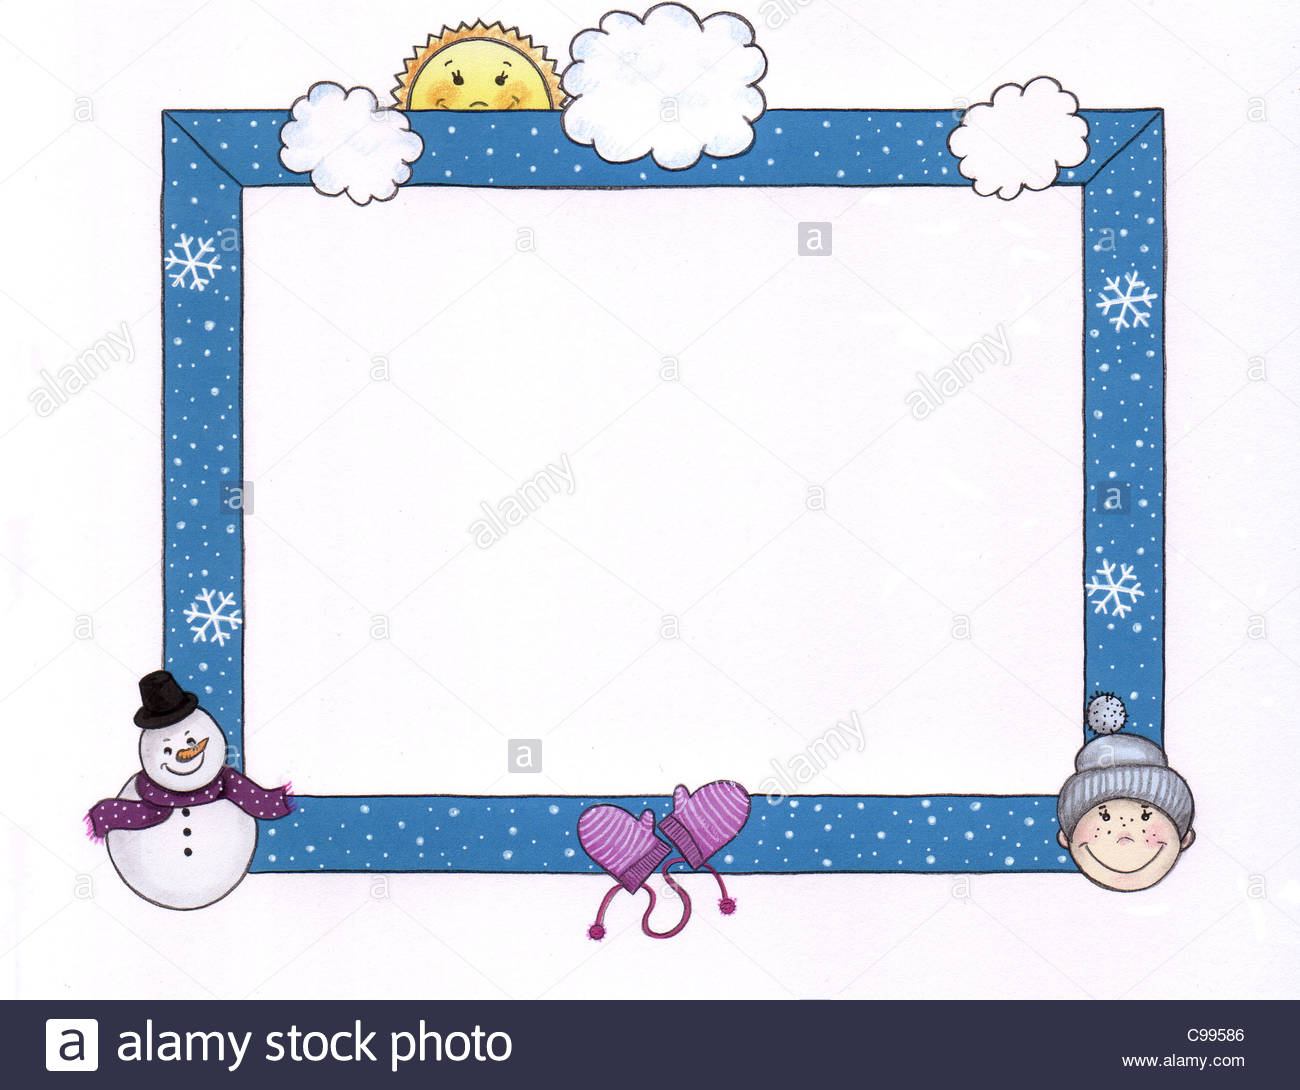 Series photo frames baby winter 7 Stock Photo: 40154358 - Alamy